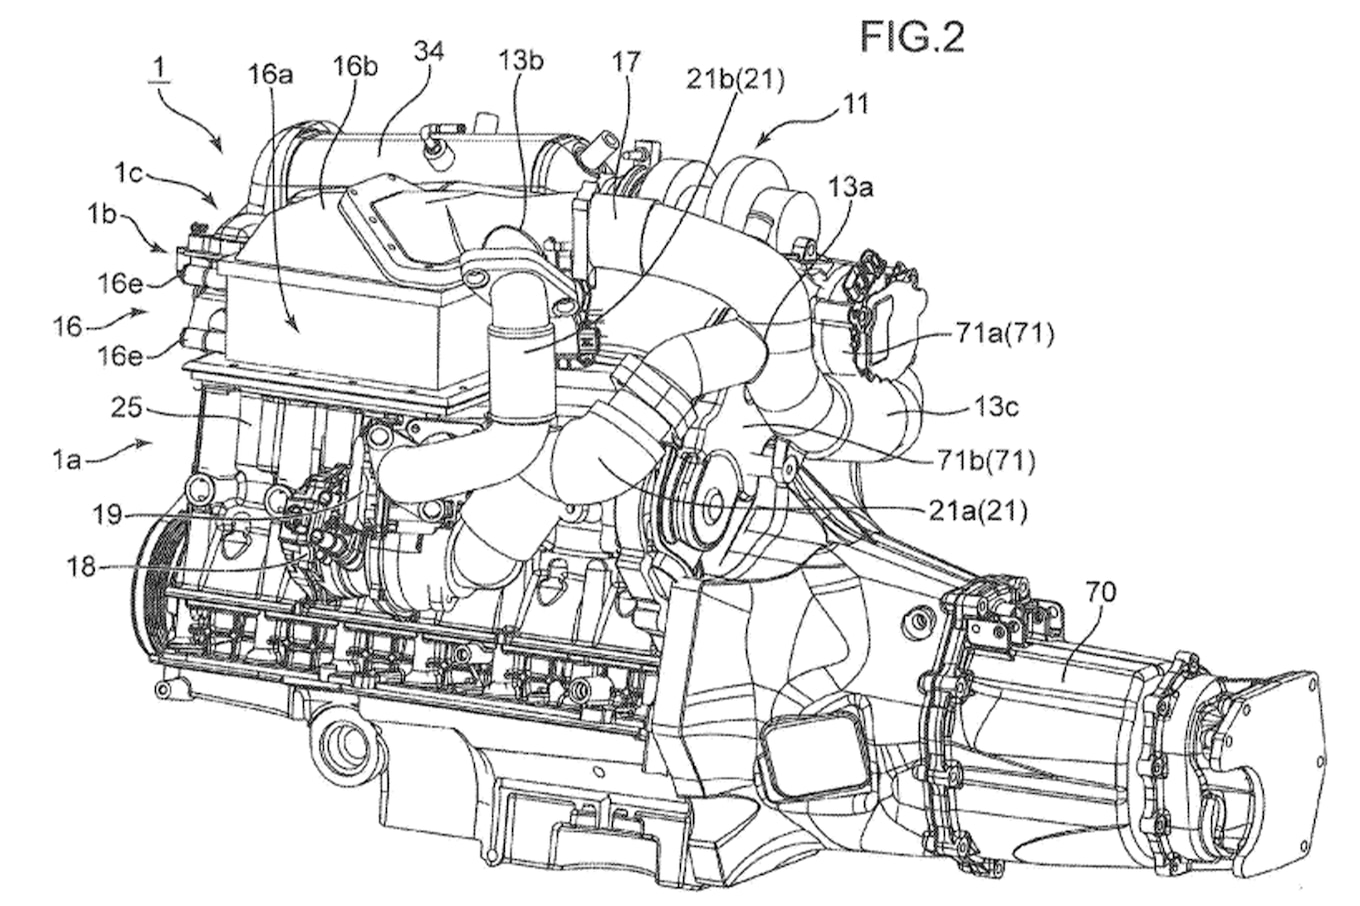 Mazda Patents Triple Charged Engine With Electric Supercharger